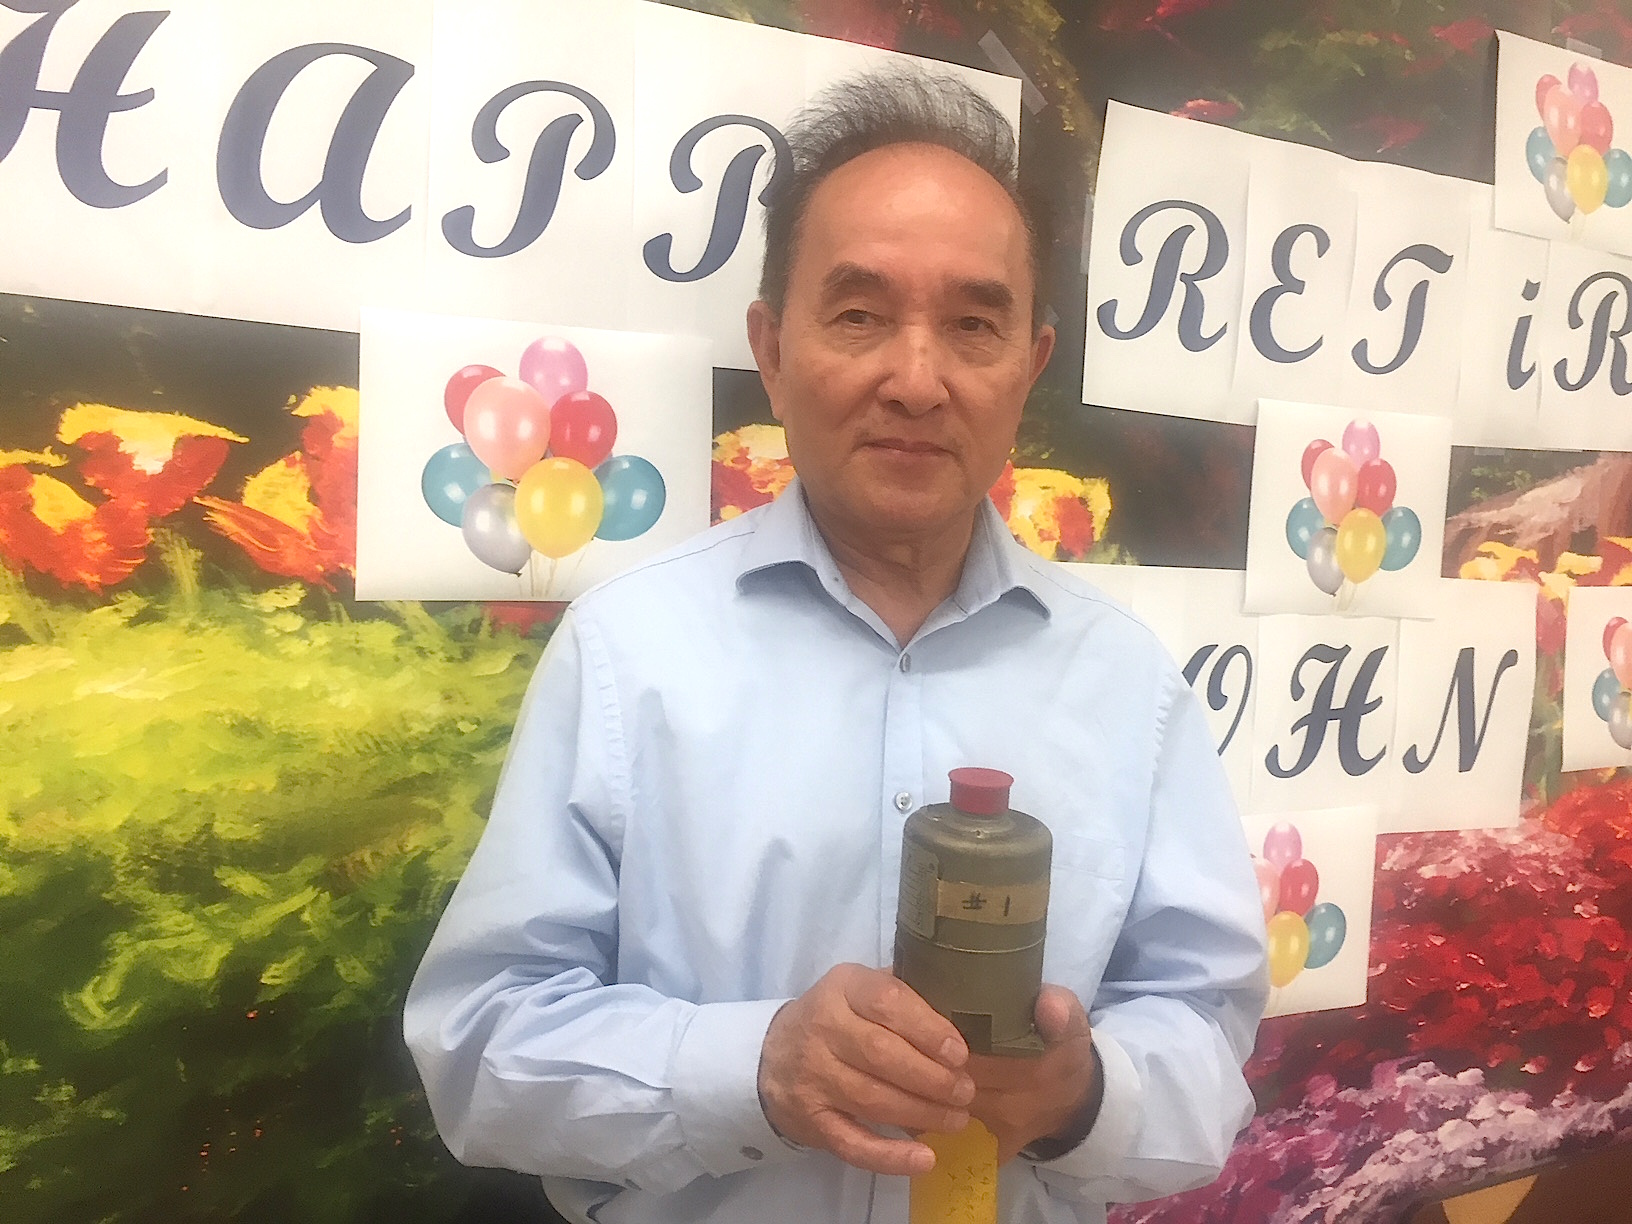 Chief Engineer John Tang Retires After 33 years of Service at Hydra-Electric